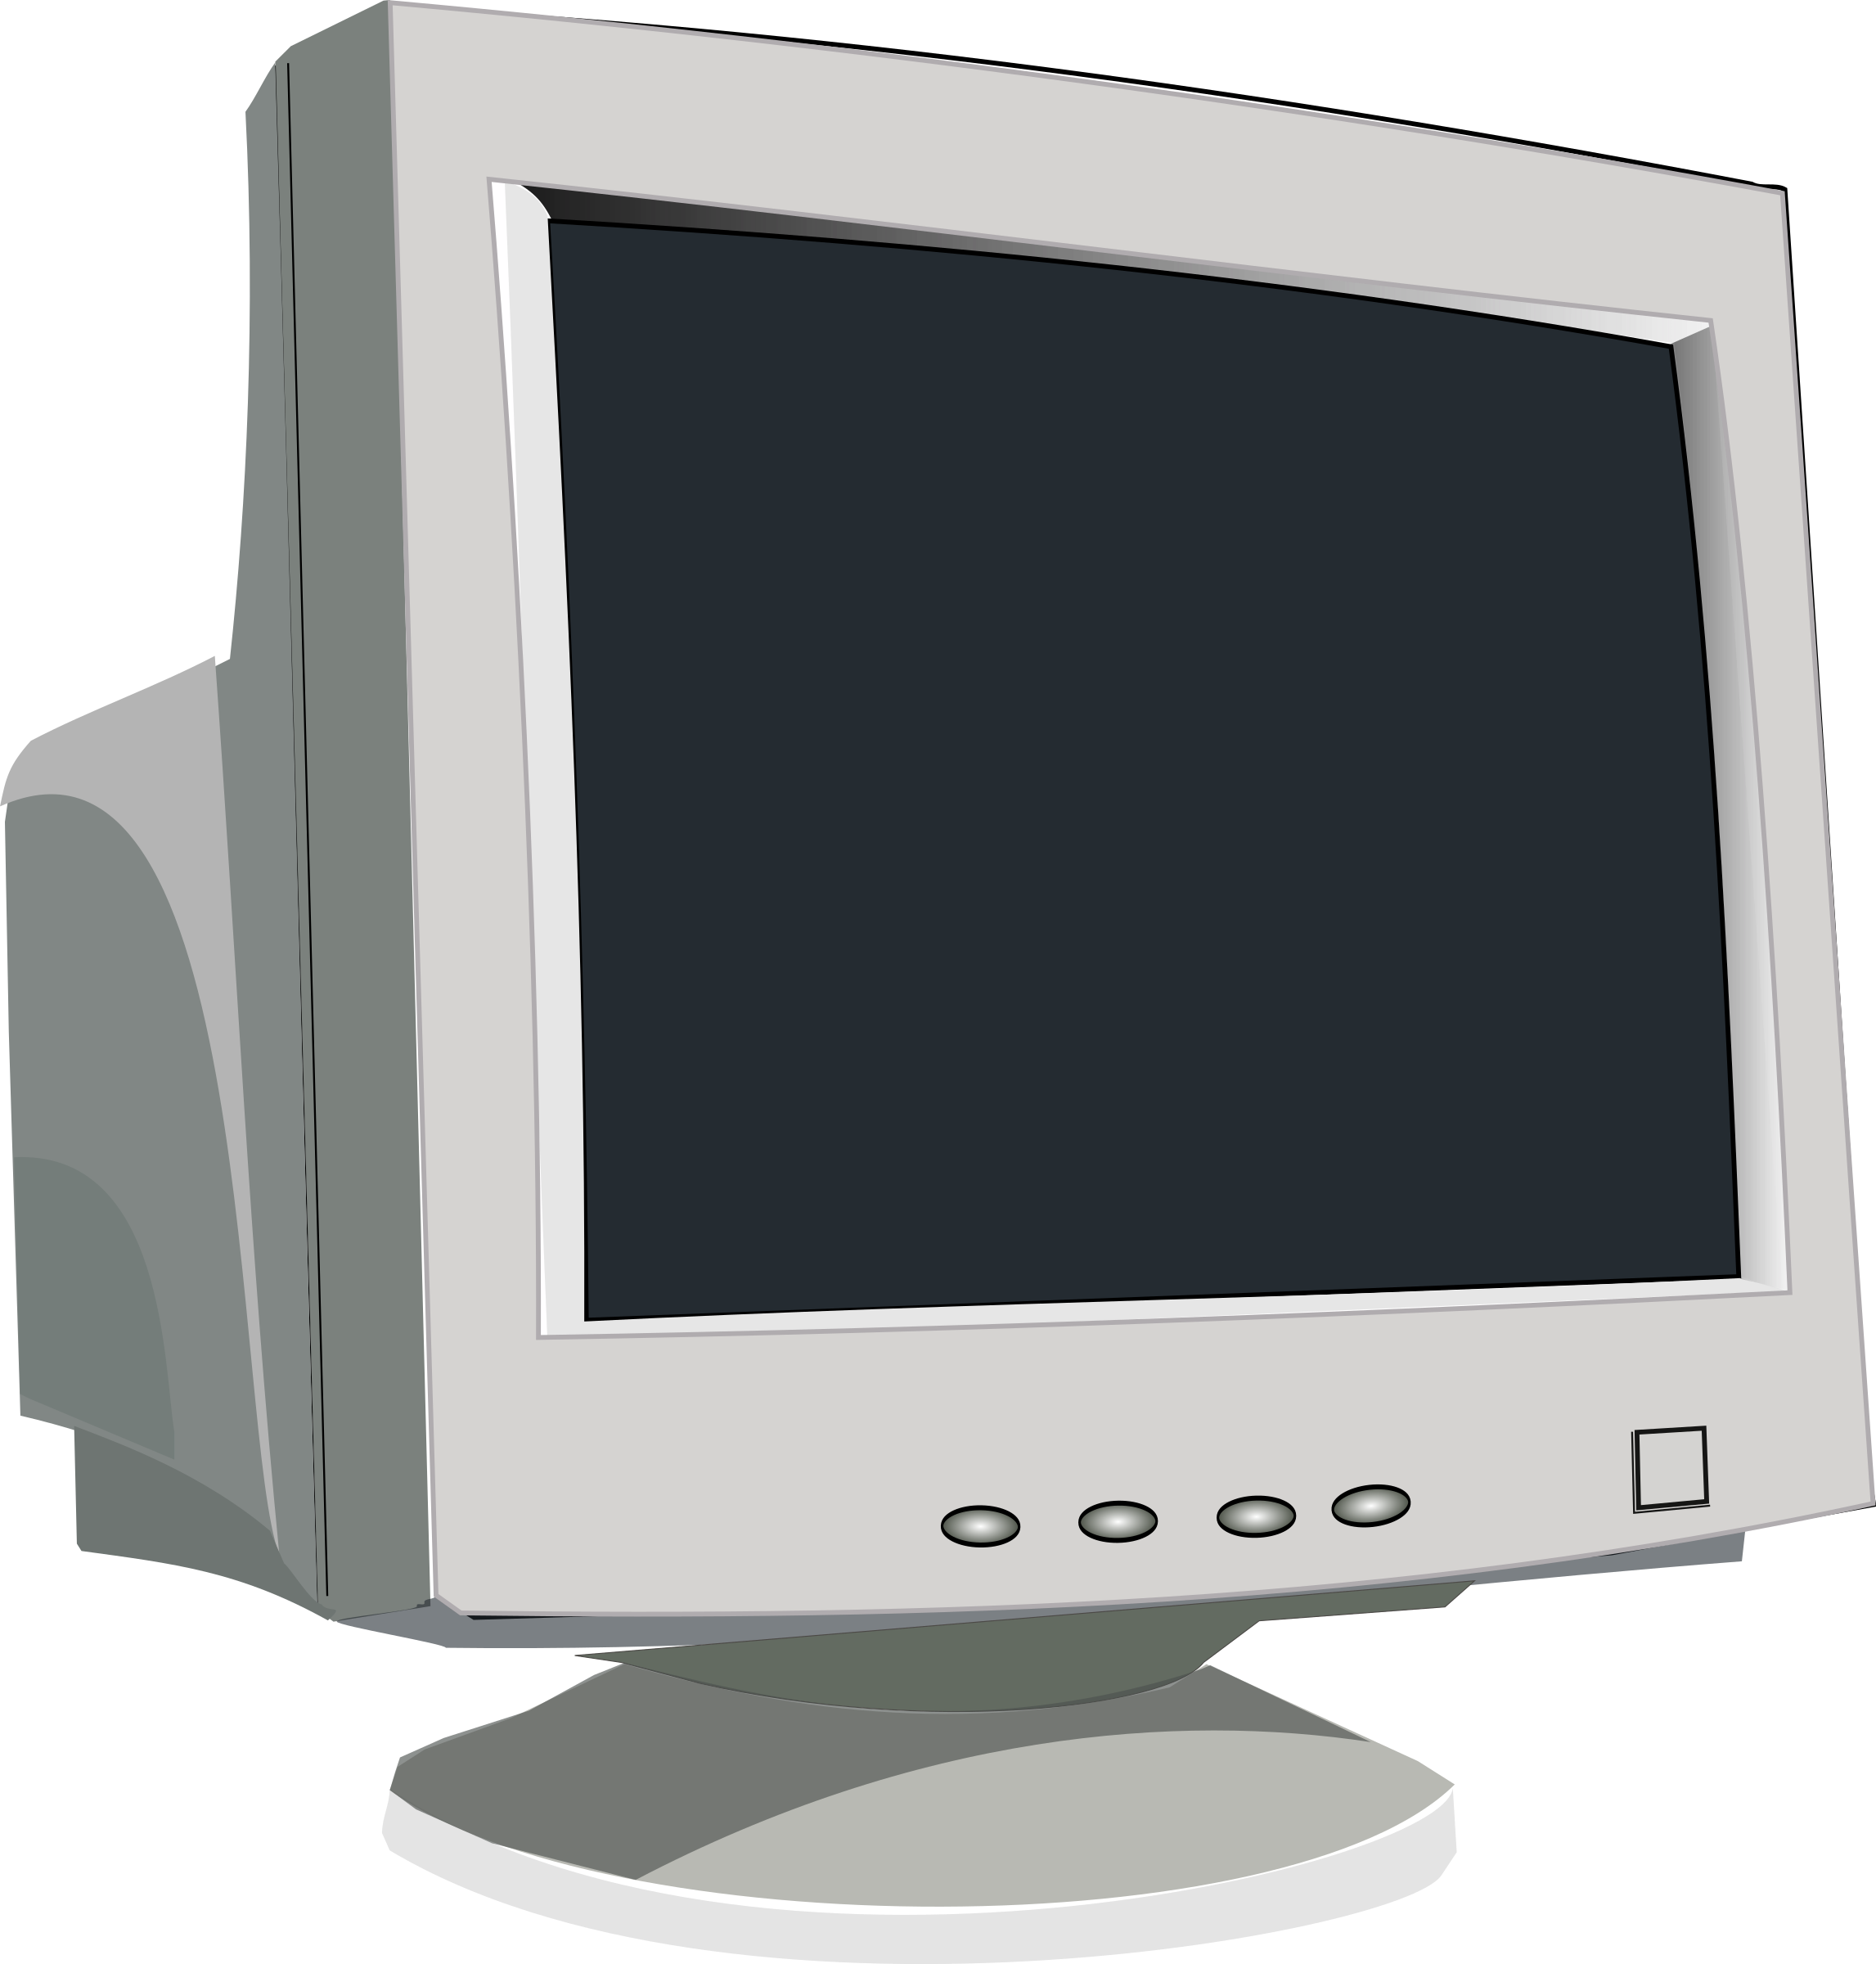 Office clipart monitor. Old crt big image